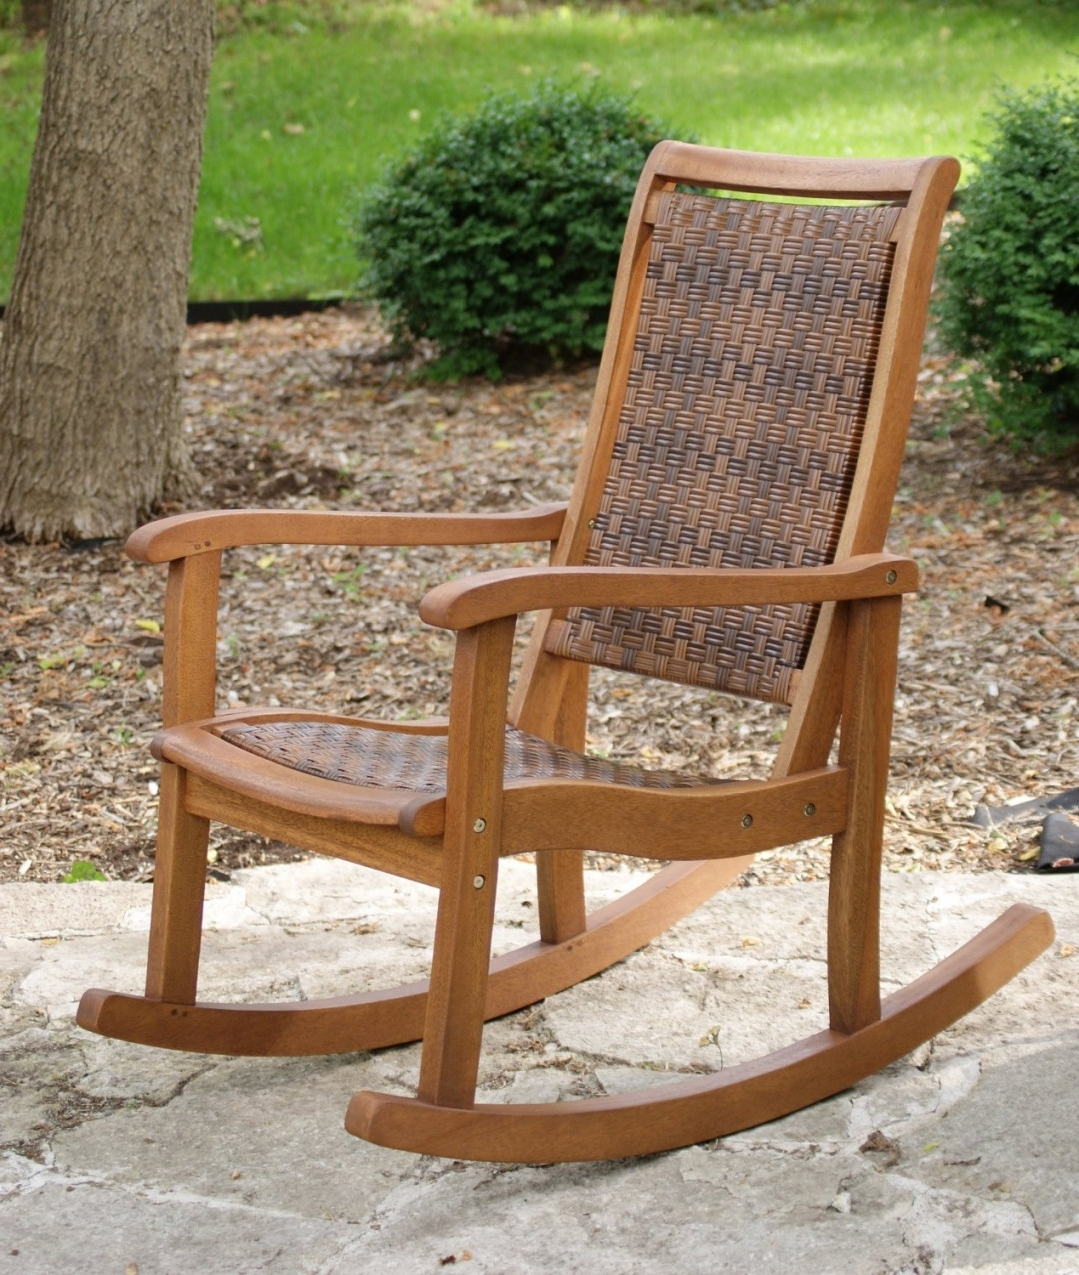 Most Recent Great Patio Rocking Chairs : Spectacular And Sensational Patio For Wooden Patio Rocking Chairs (View 7 of 15)